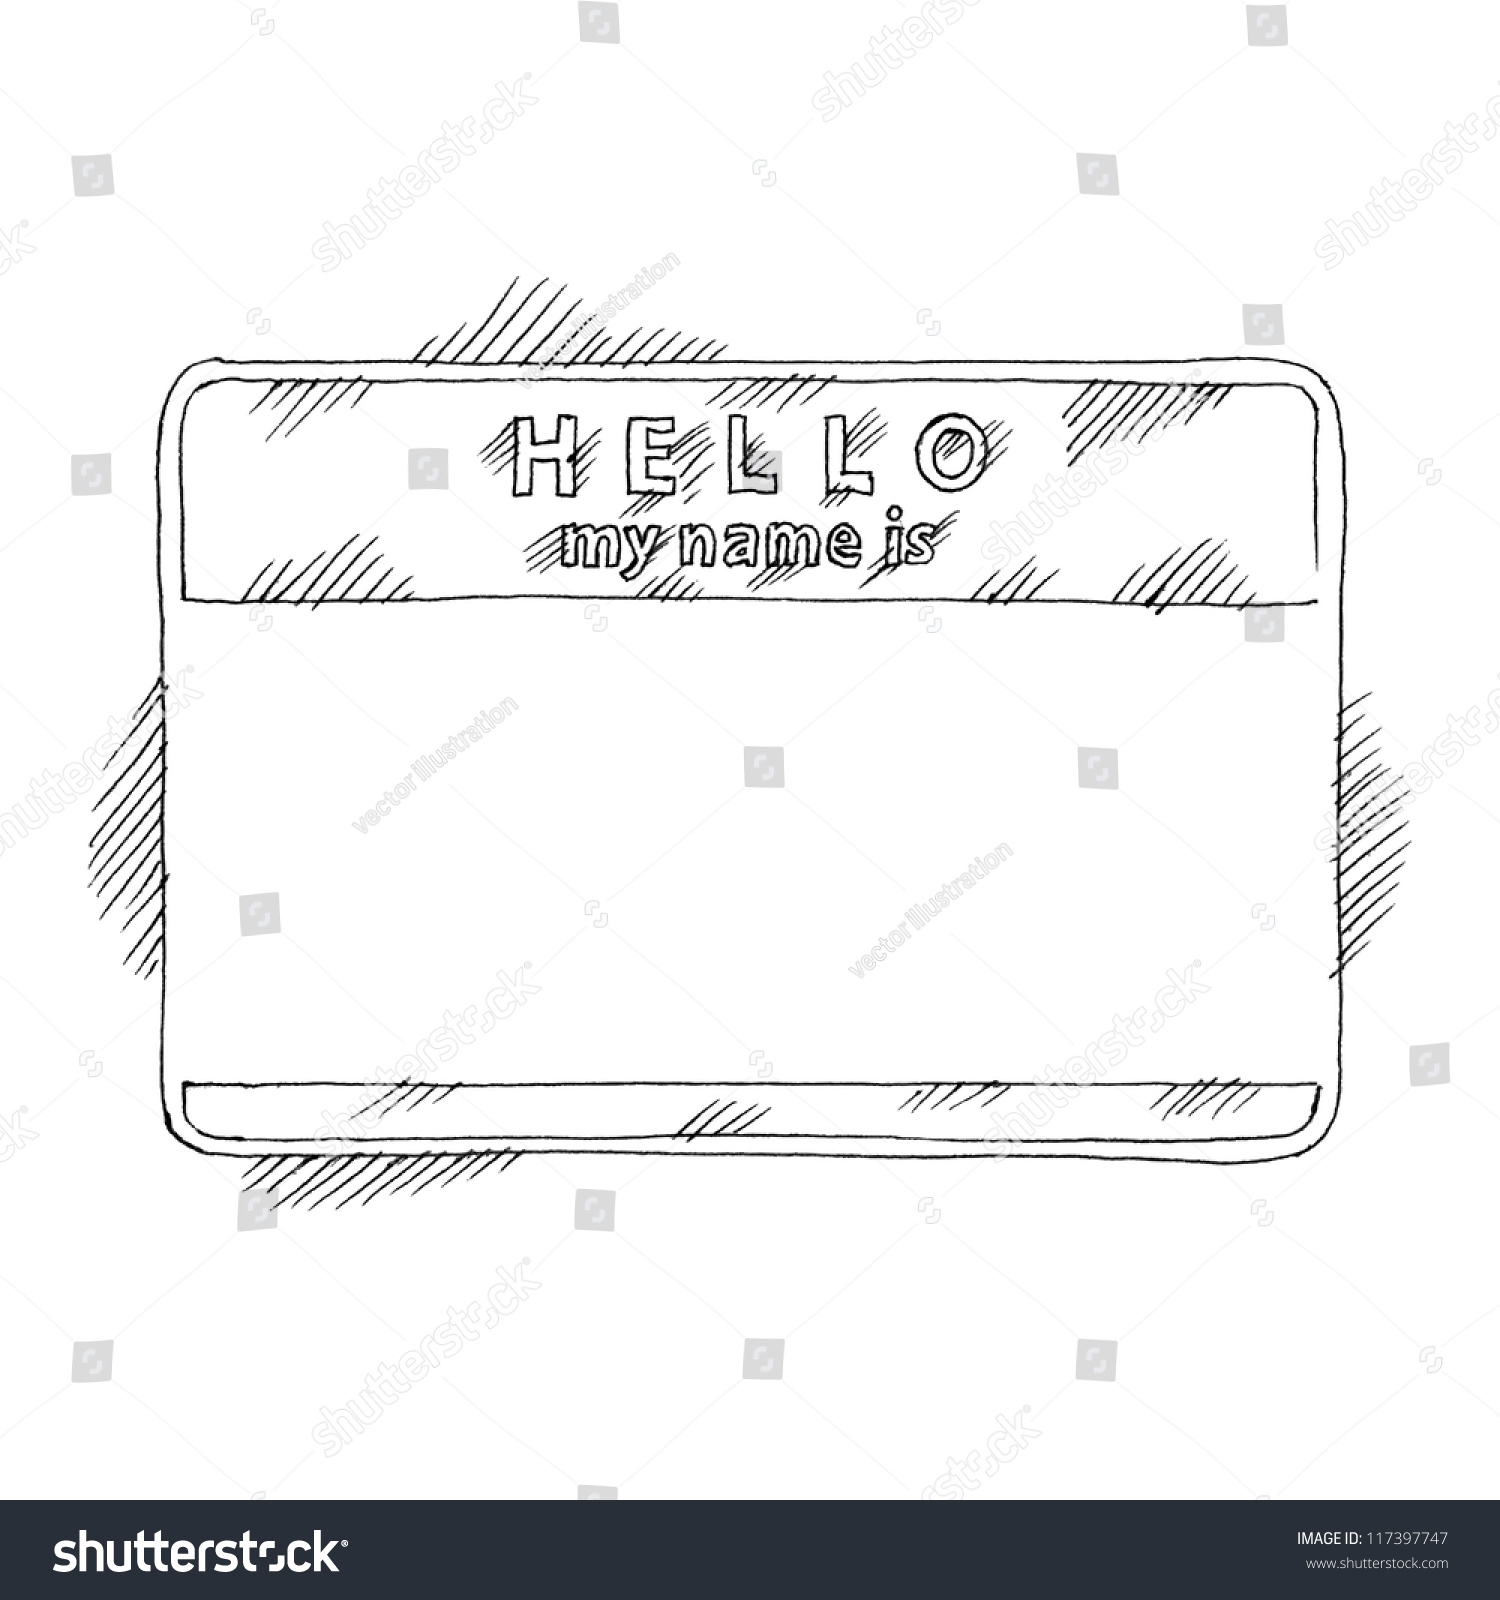 H tag background image - Name Tag Sticker Hello My Name Is On White Background Blank Badge Painted Handmade Draw